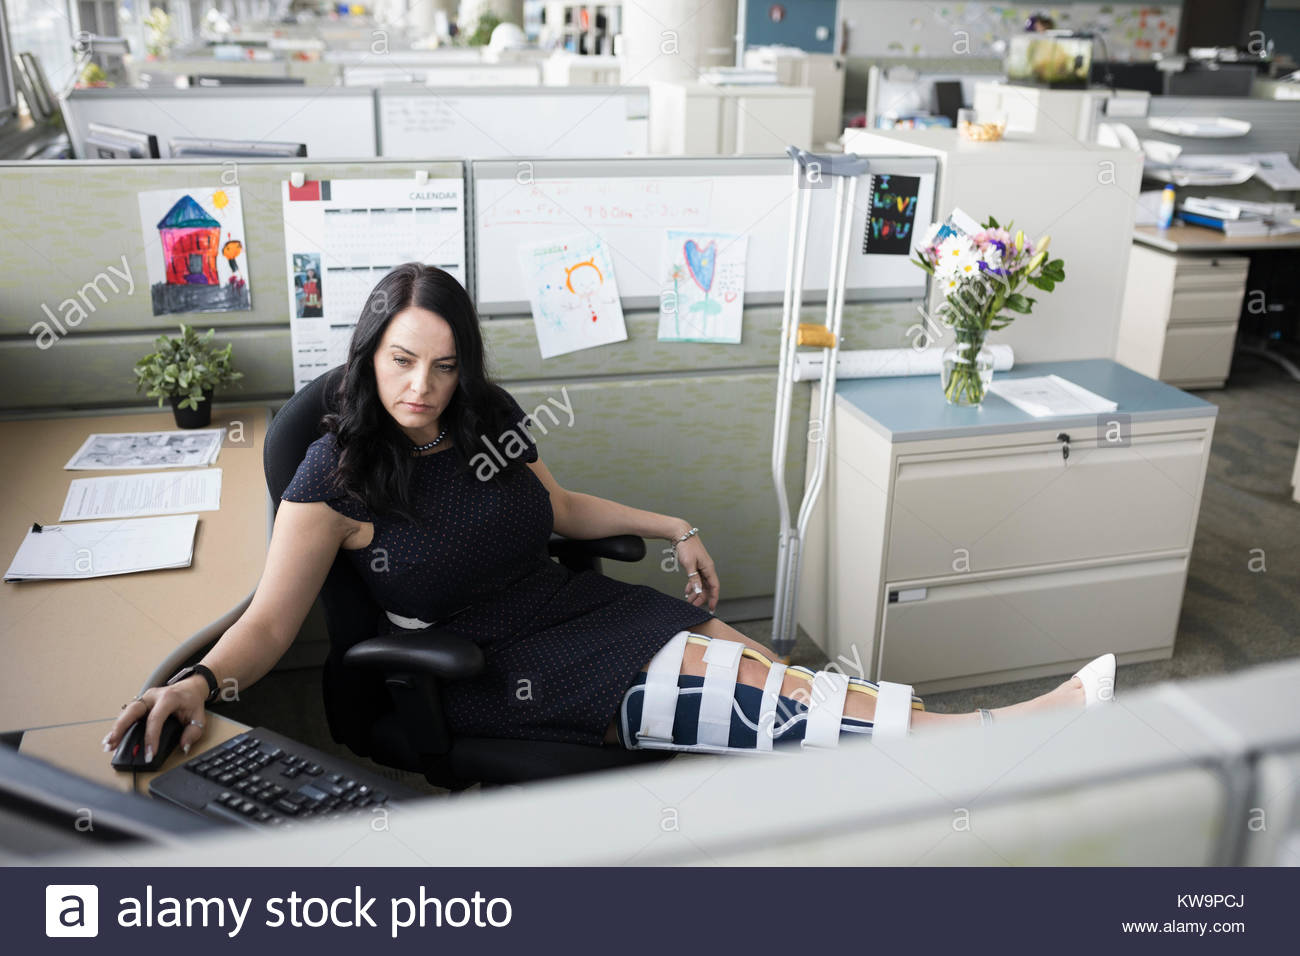 Businesswoman with broken leg in brace working at computer with feet up in office cubicle - Stock Image